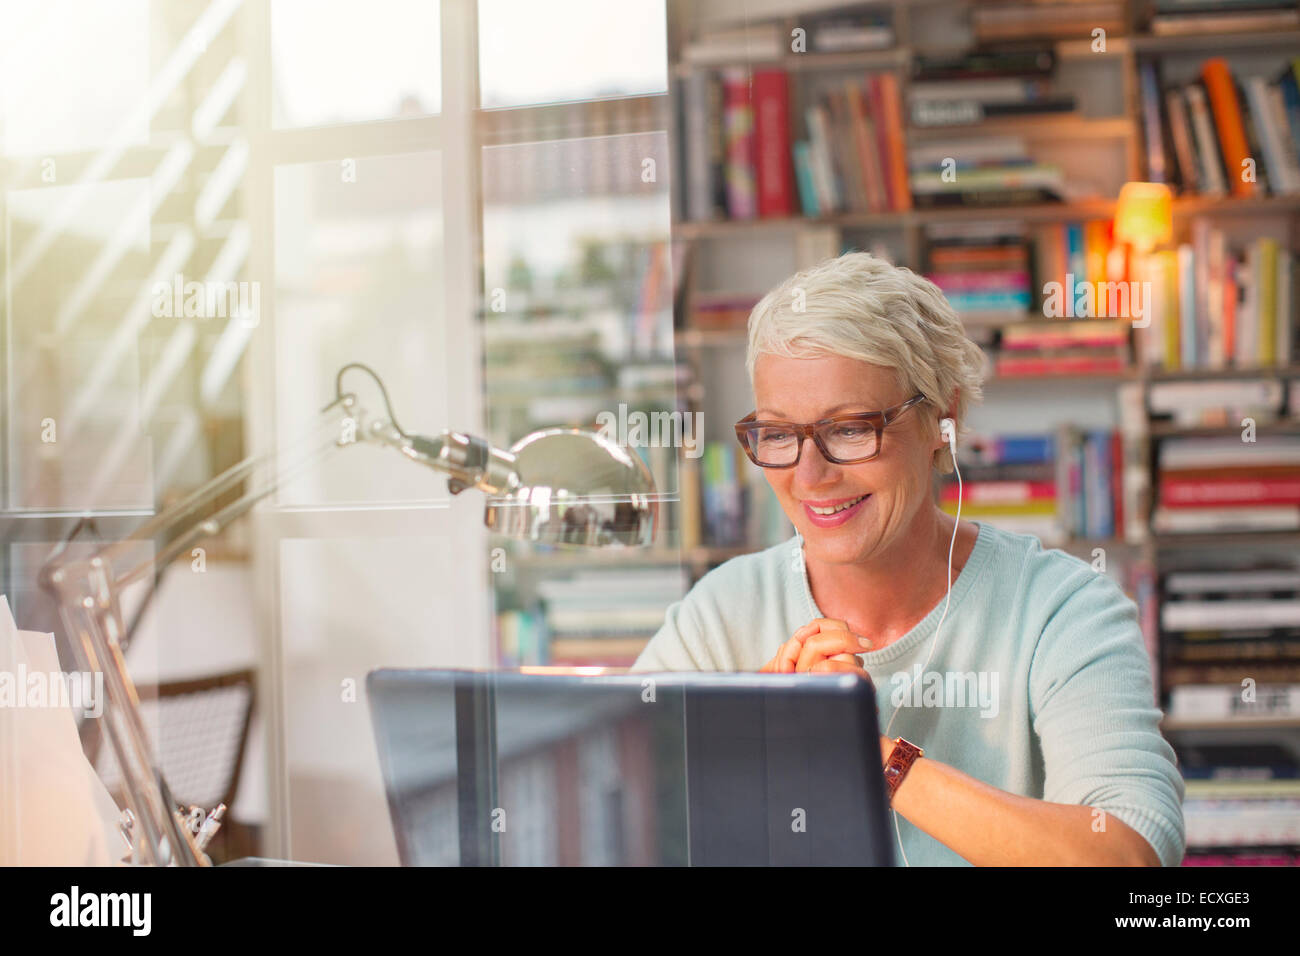 Businesswoman listening to earbuds and working in home office Stock Photo